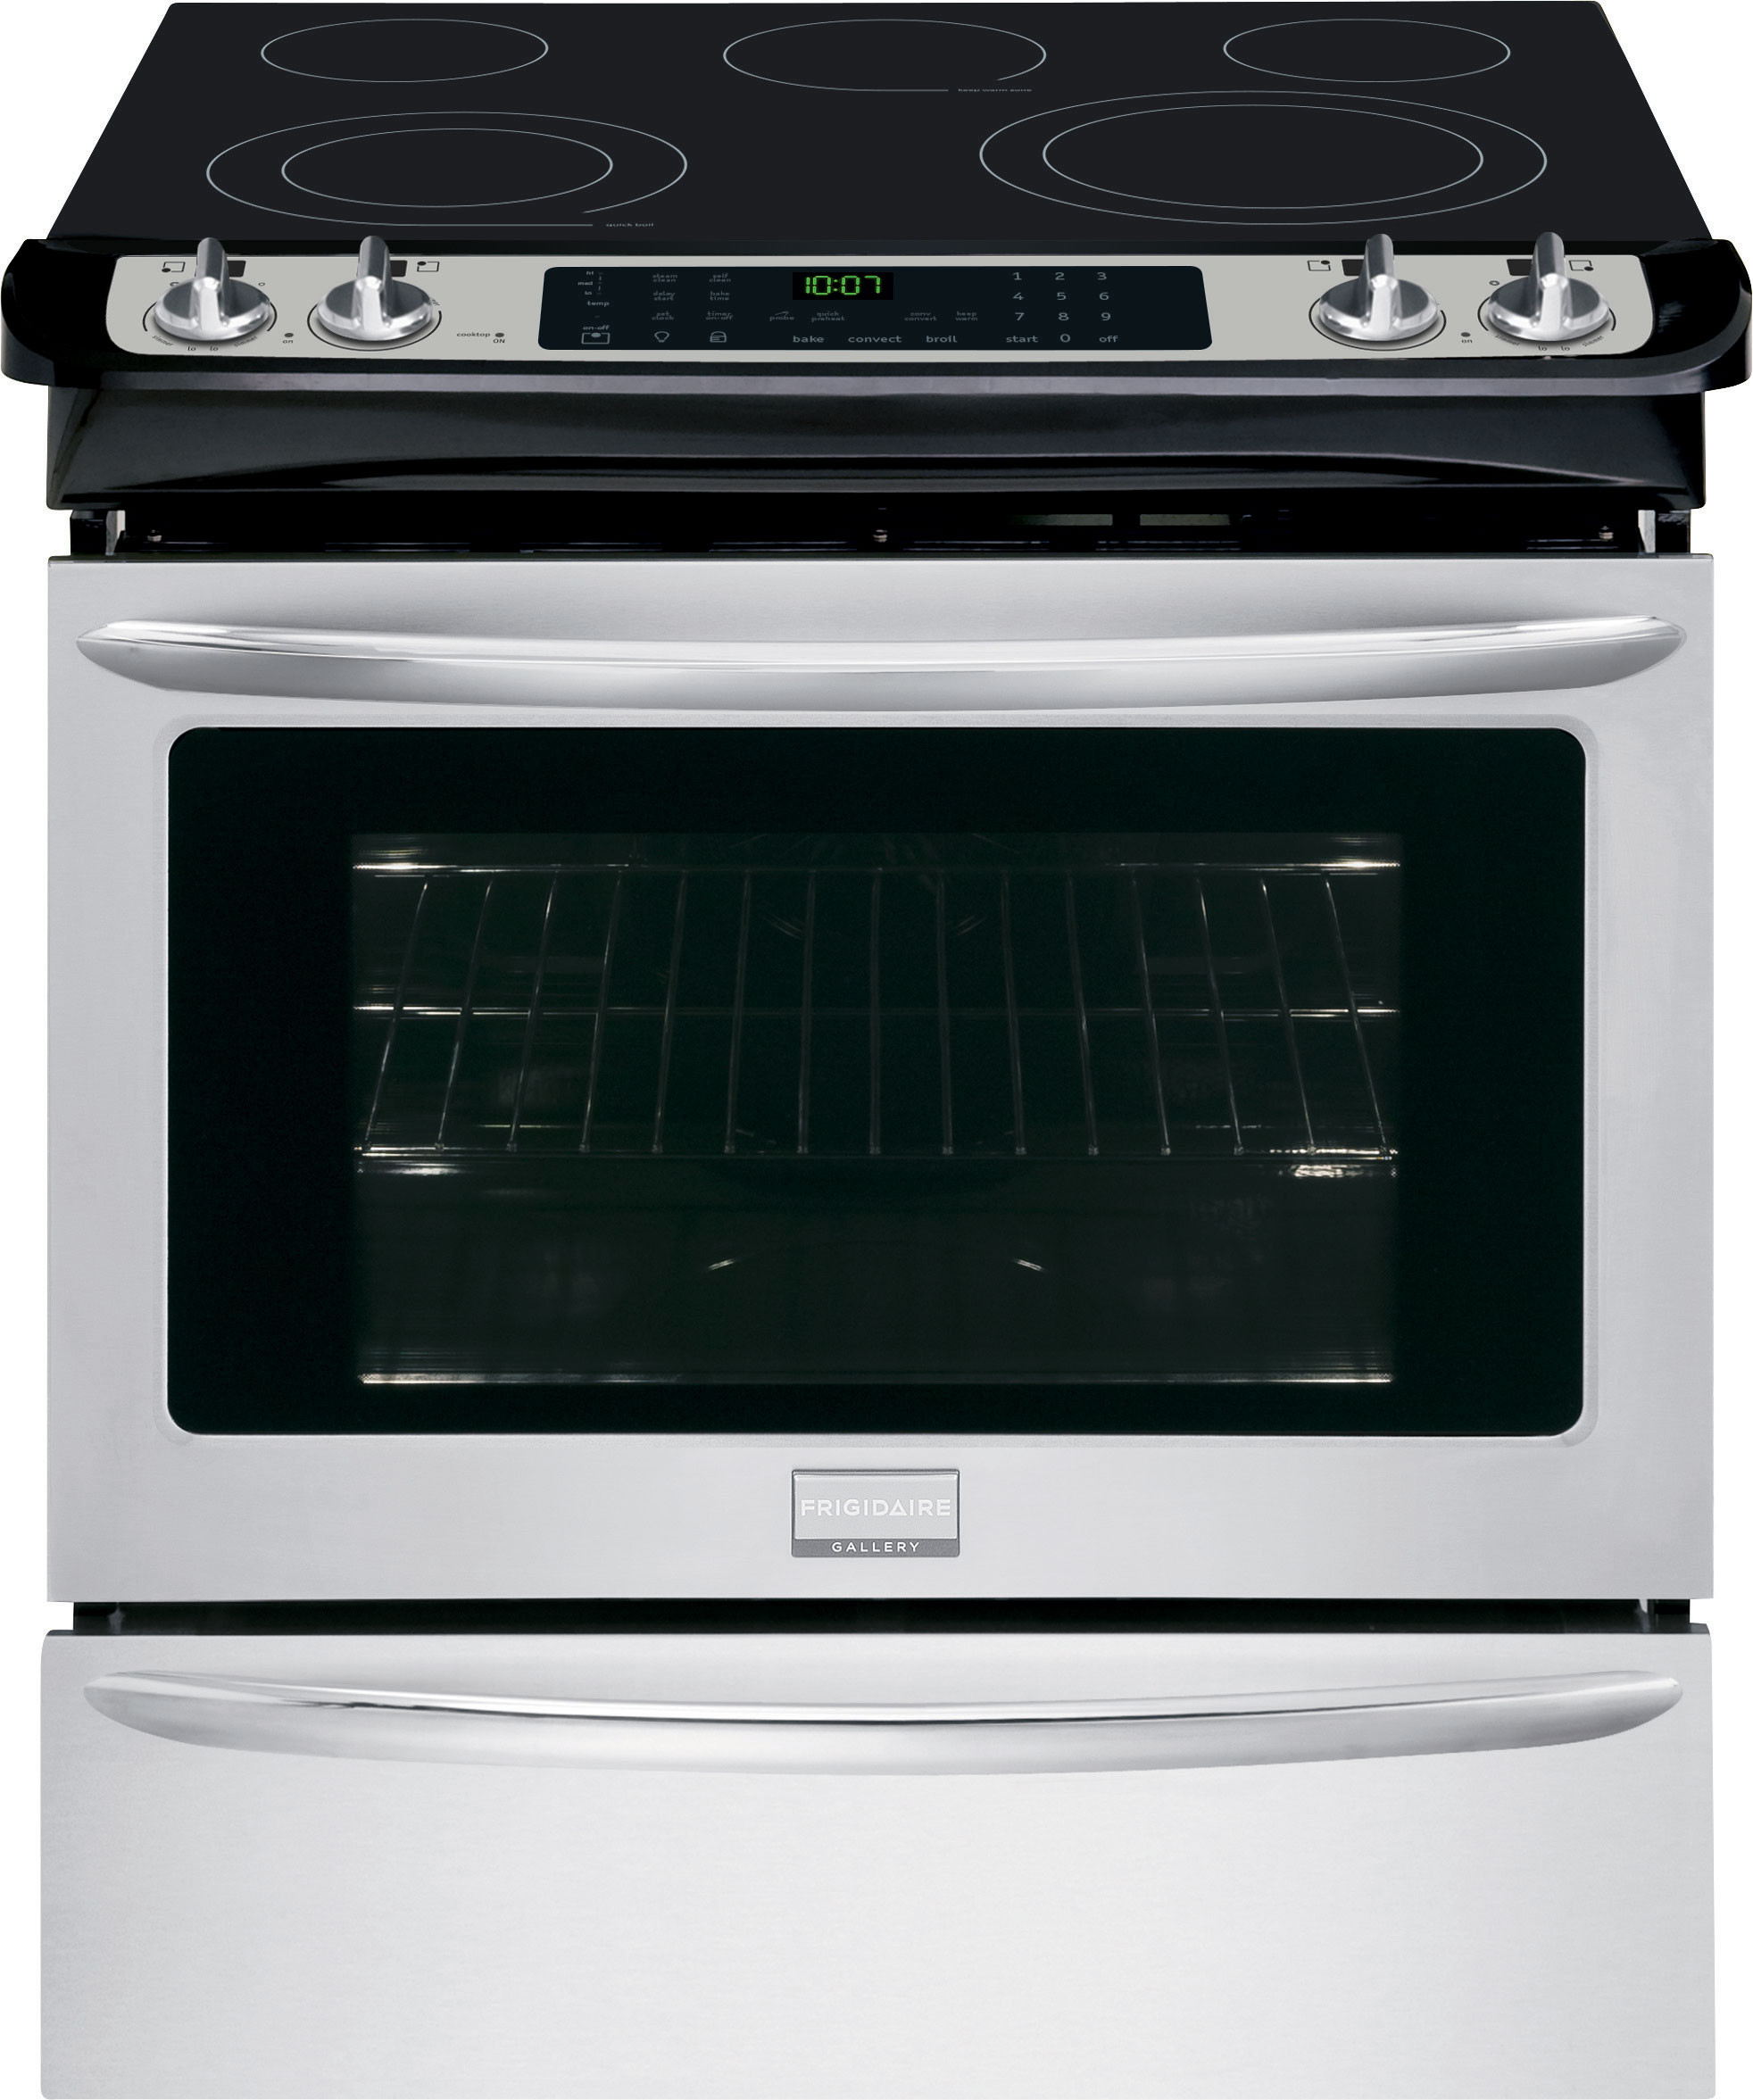 Frigidaire Fges3065pf 30 Inch Slide In Electric Range With True Wiring Diagram 4 Wire Stove Oven Convectiontemperature Probe Steam Self Clean 5 Heating Elements Spacewise